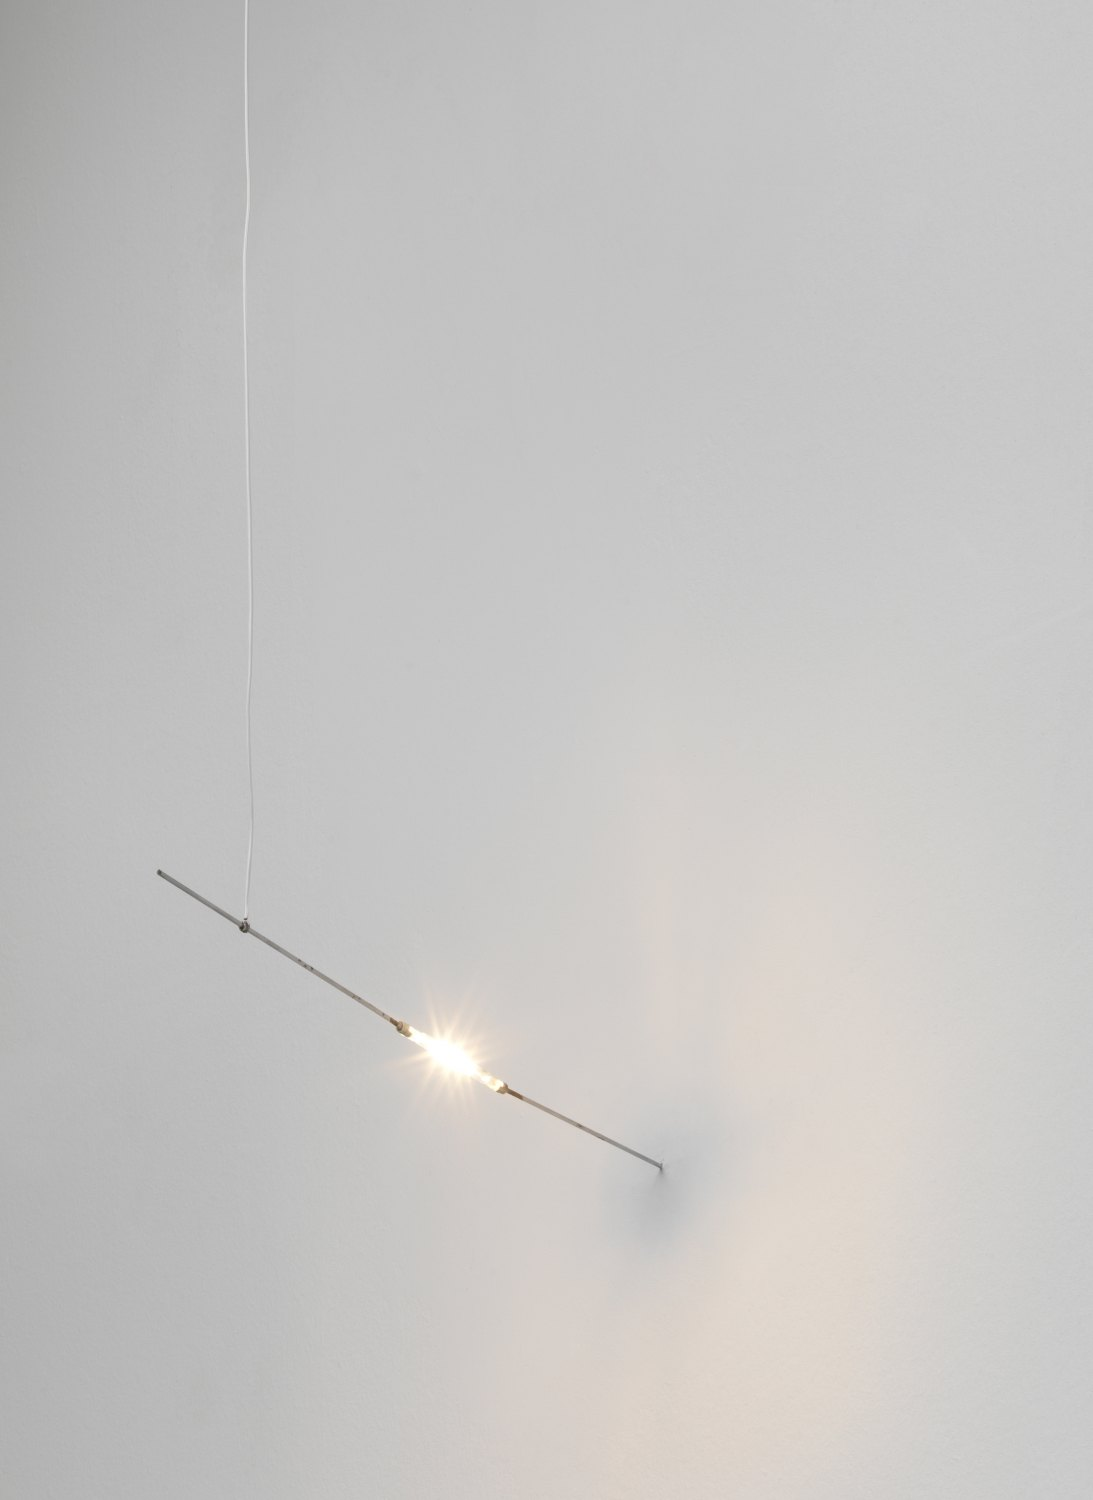 Kitty Kraus Untitled, 2011 Halogen lamp and cable, dimensions variable